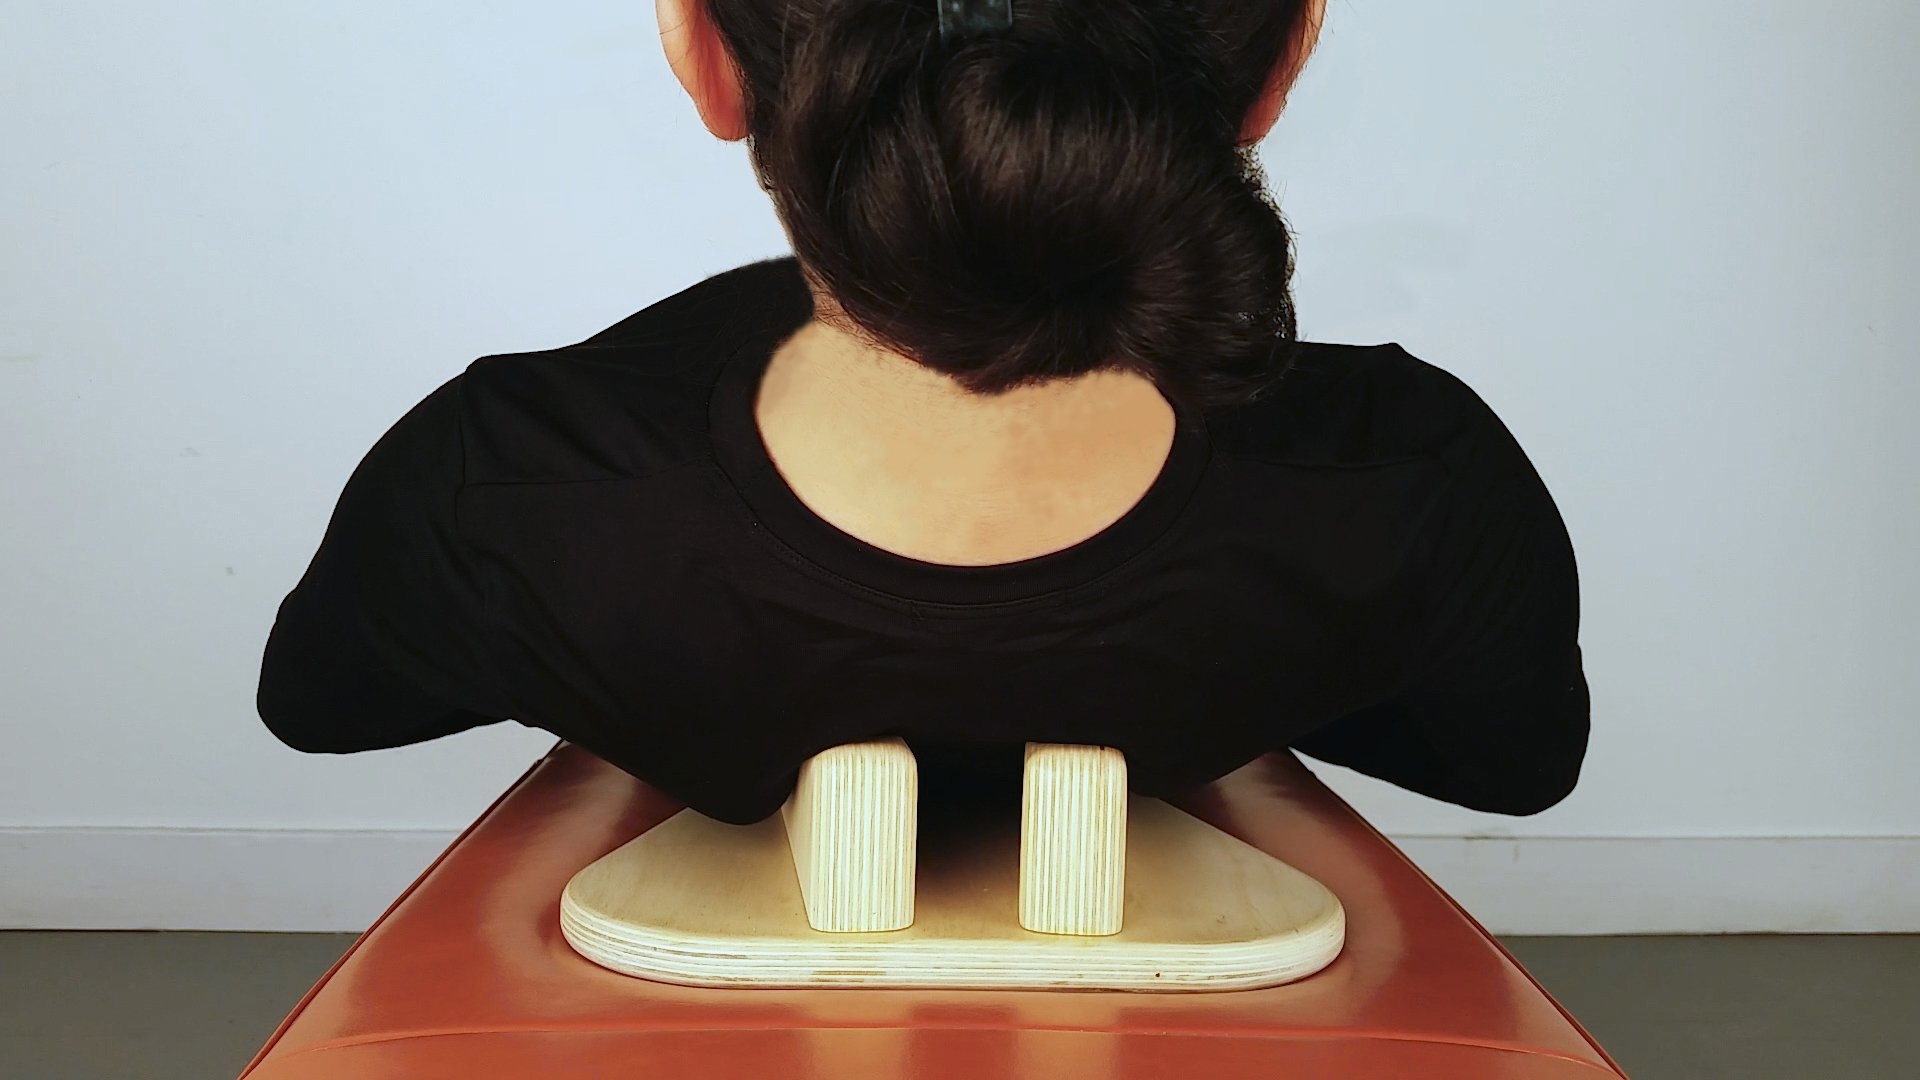 PurePosture: Helps Eliminate Back Pain, Improve Posture; Just Lay Down